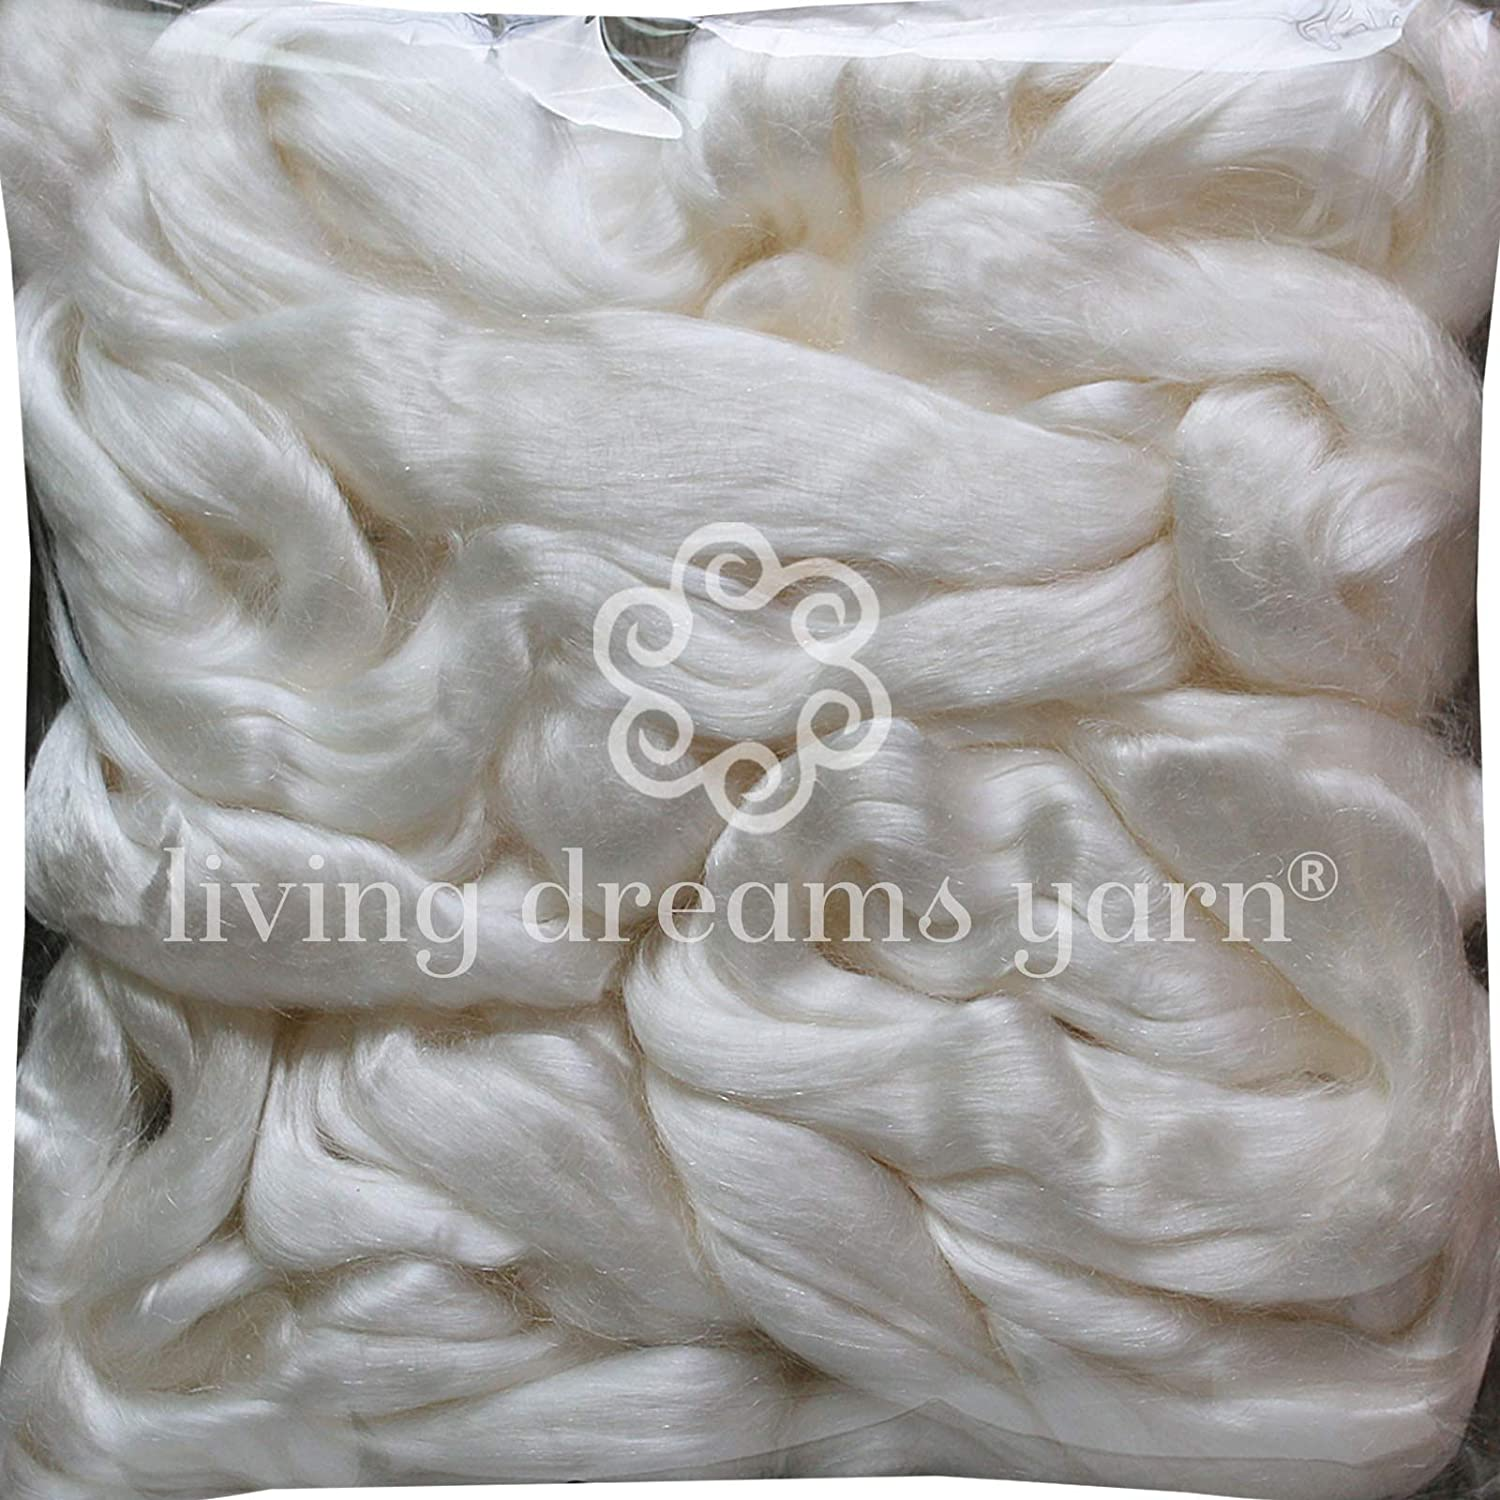 Super Soft Shiny Vegan Combed Top Soybean Fiber for Spinning Blending Dyeing